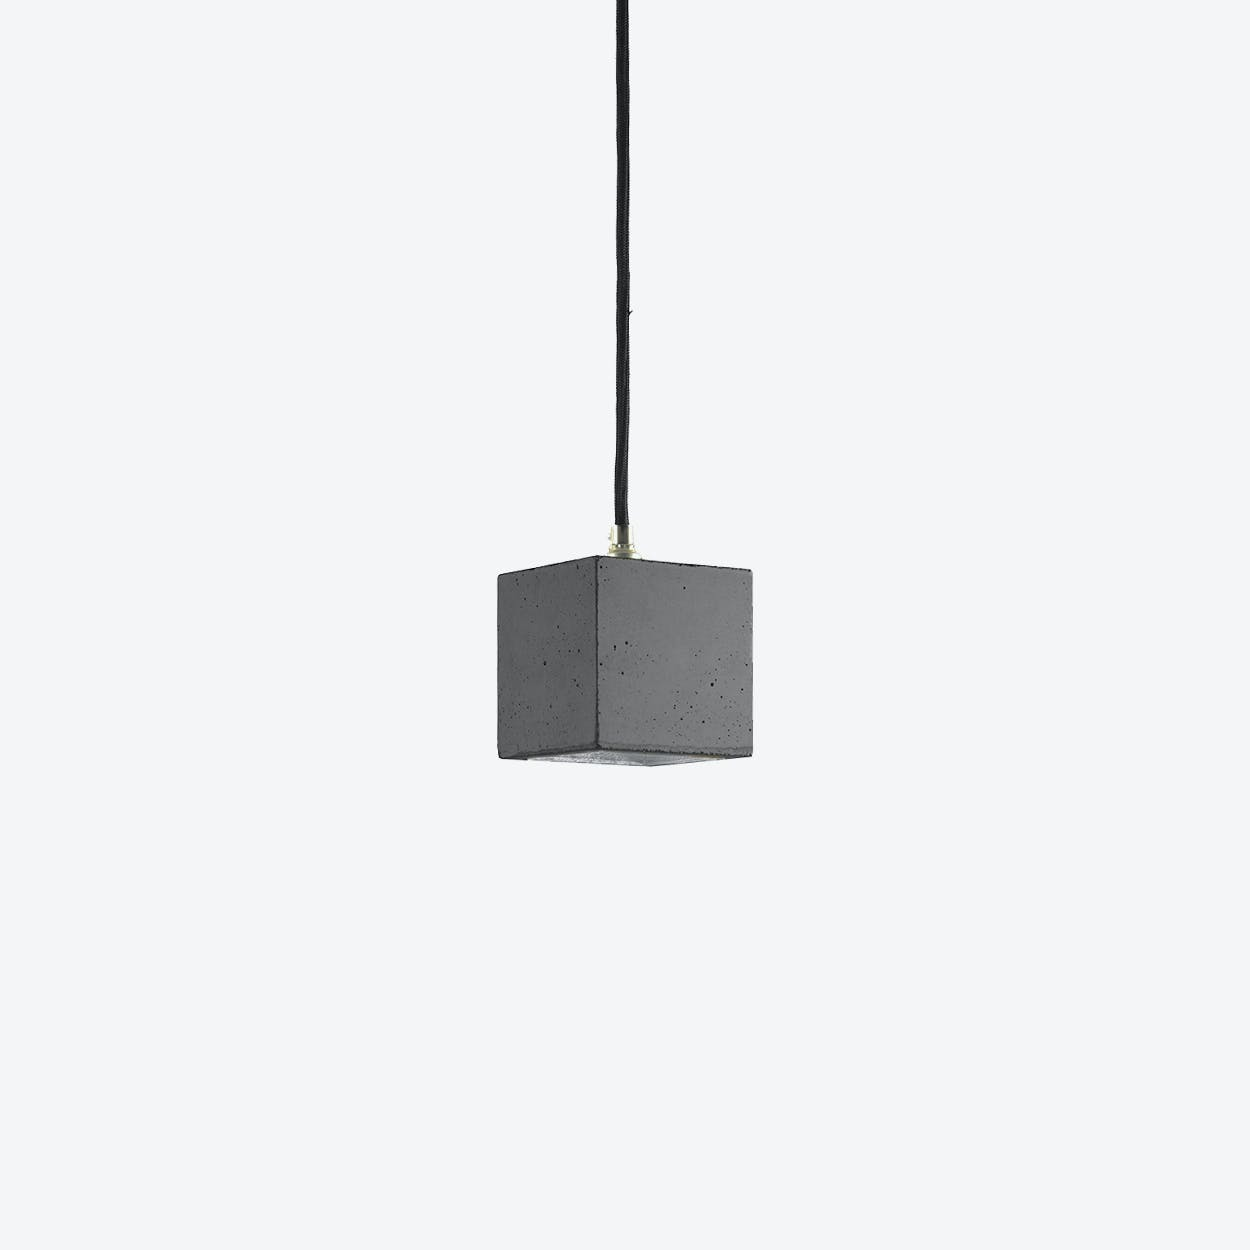 Concrete Pendant Light Cubic Small B6 in Dark Grey and Silver